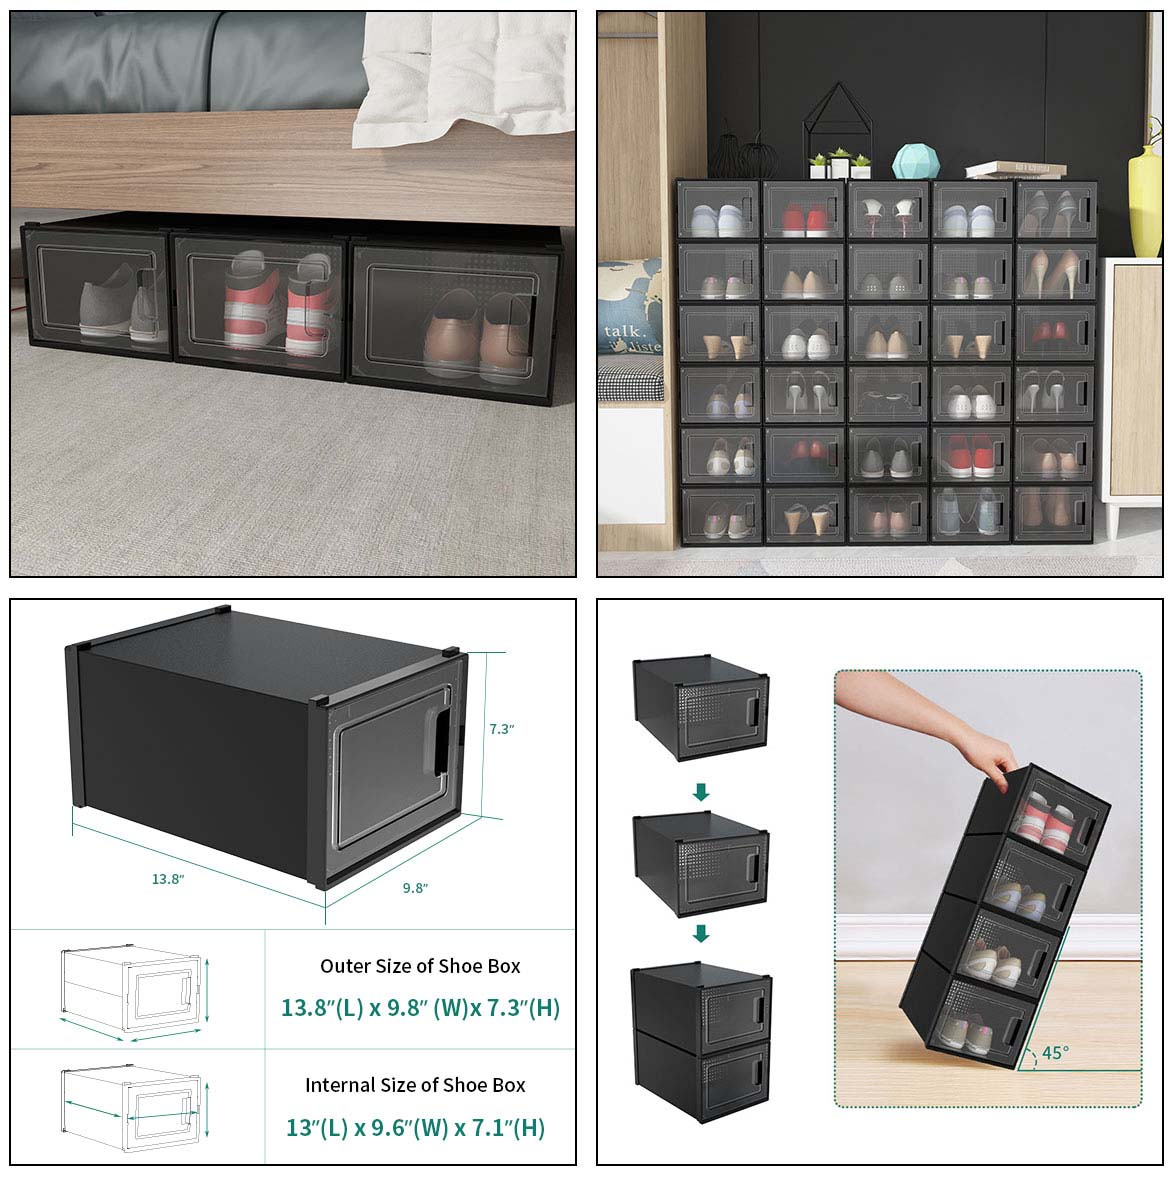 use and size of transparent shoe box